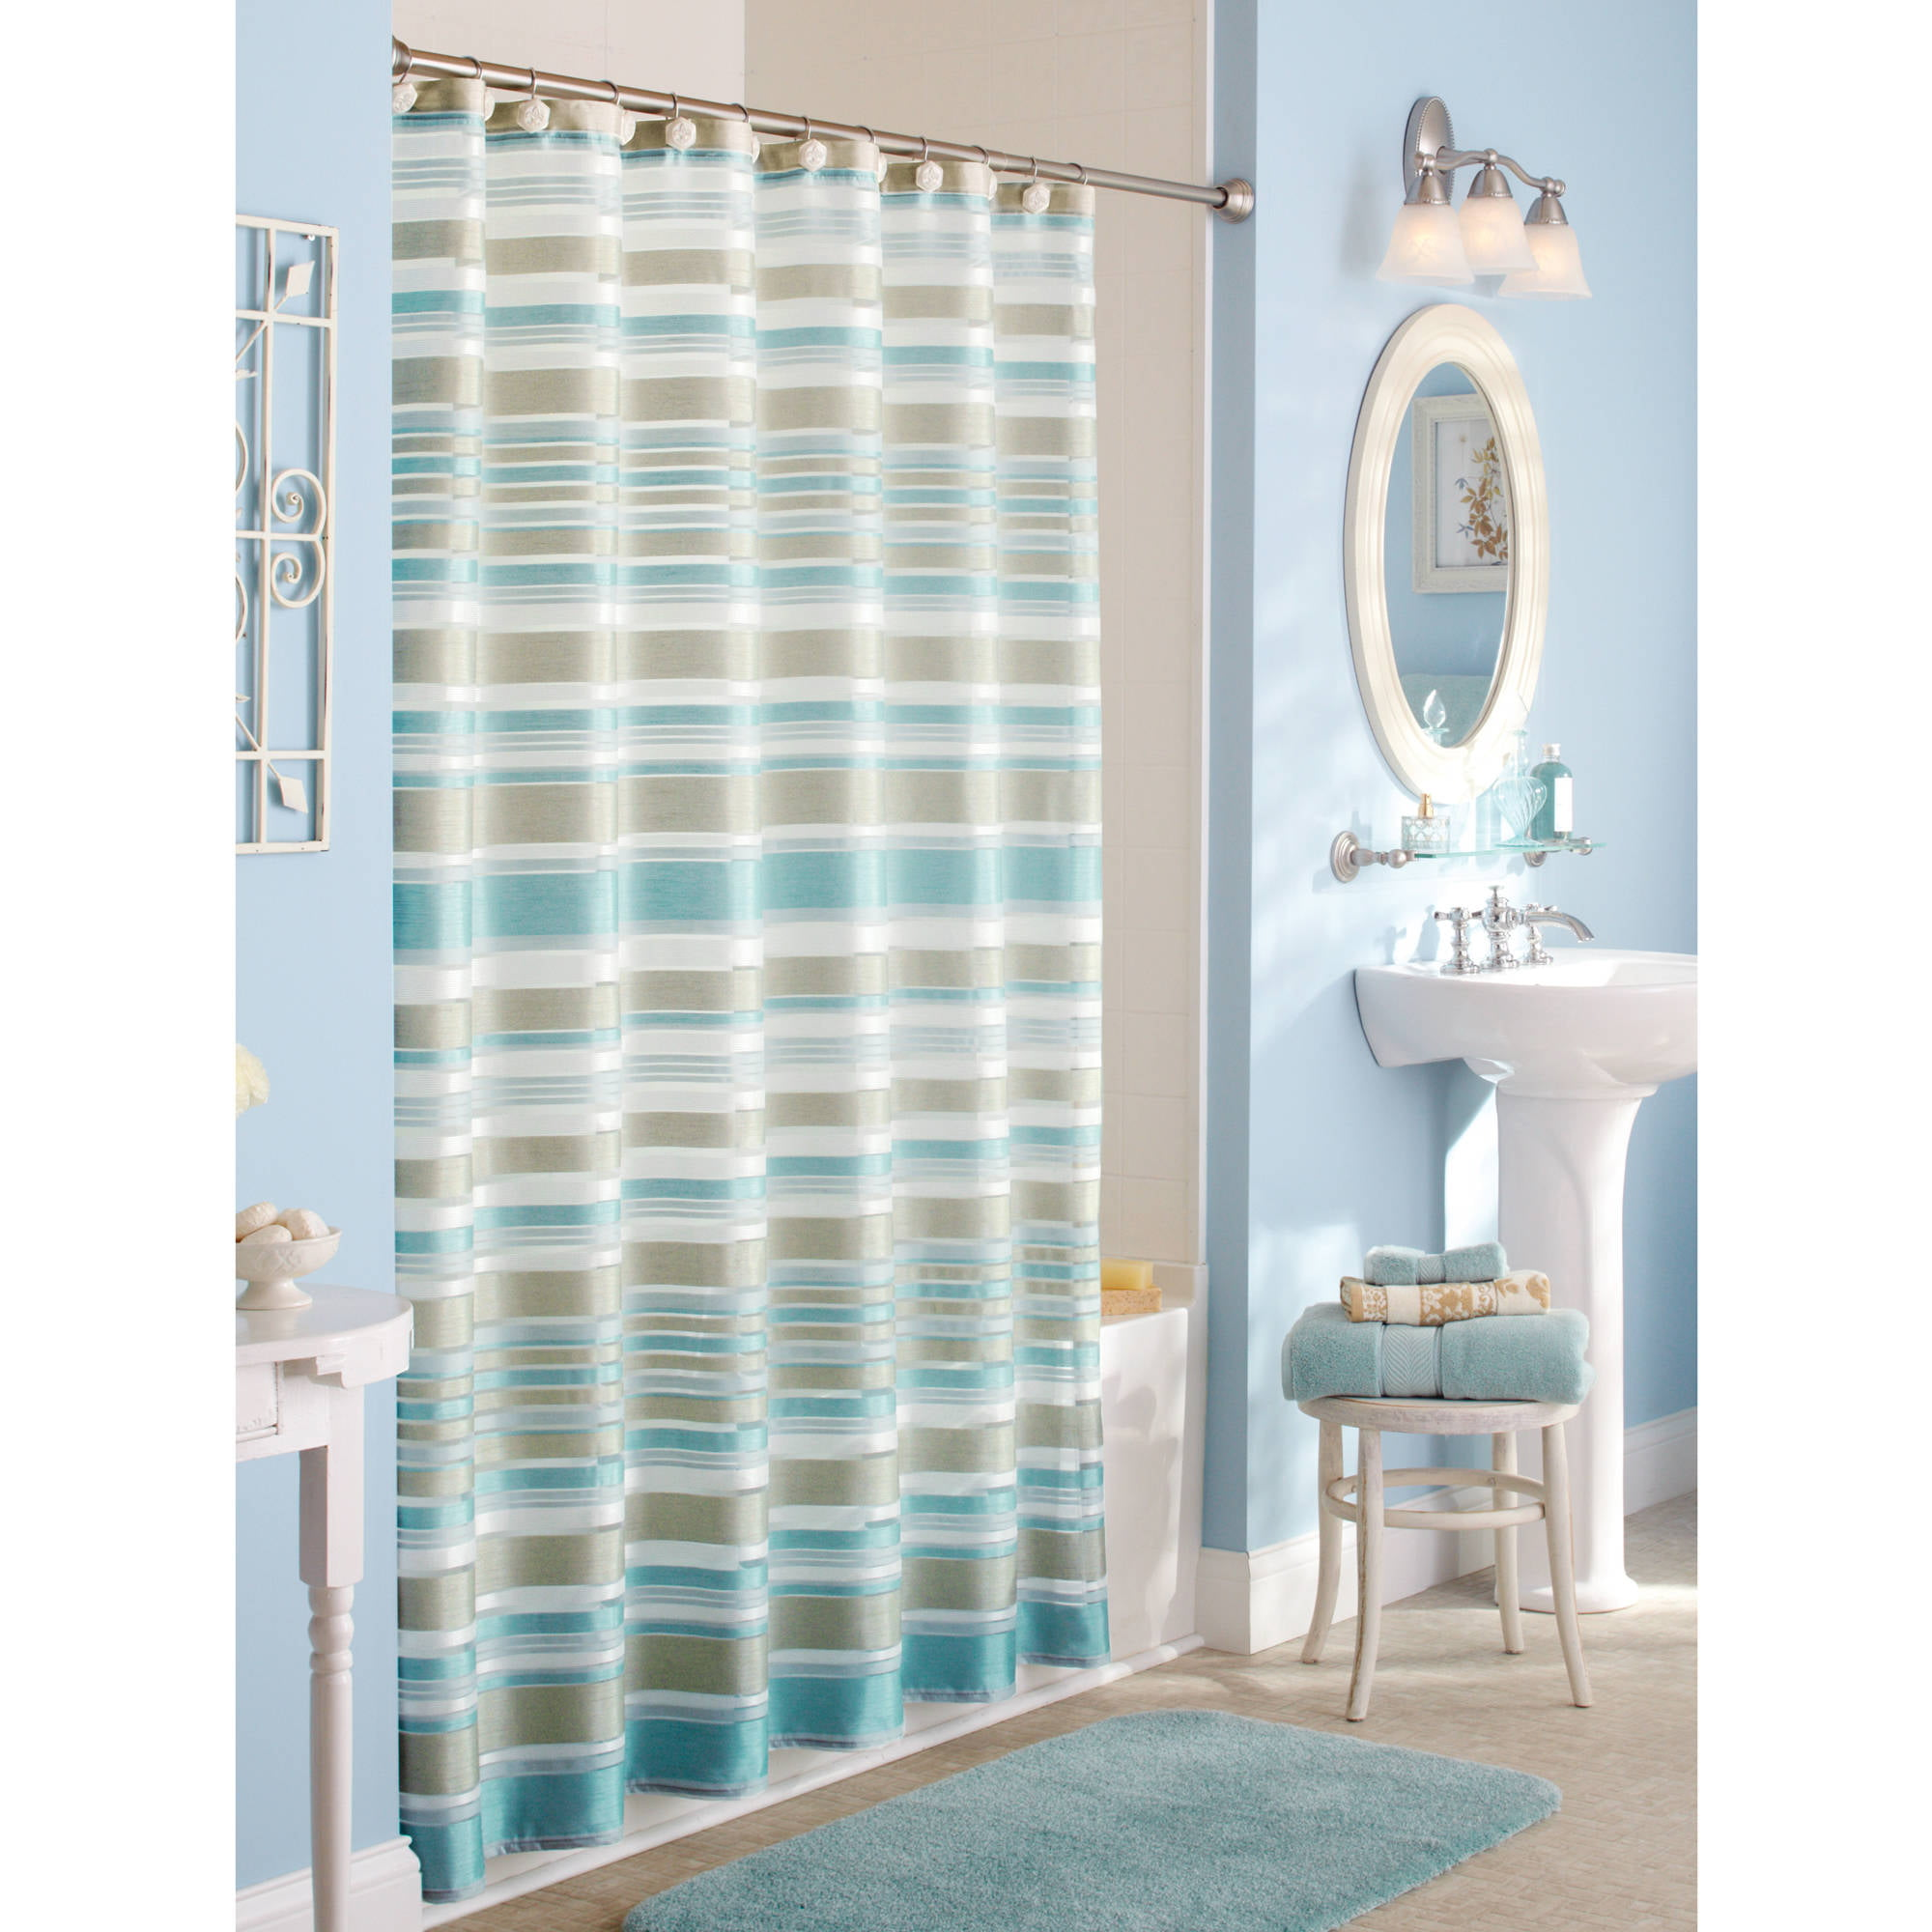 Bath   Walmart com. Yellow And Teal Shower Curtain. Home Design Ideas